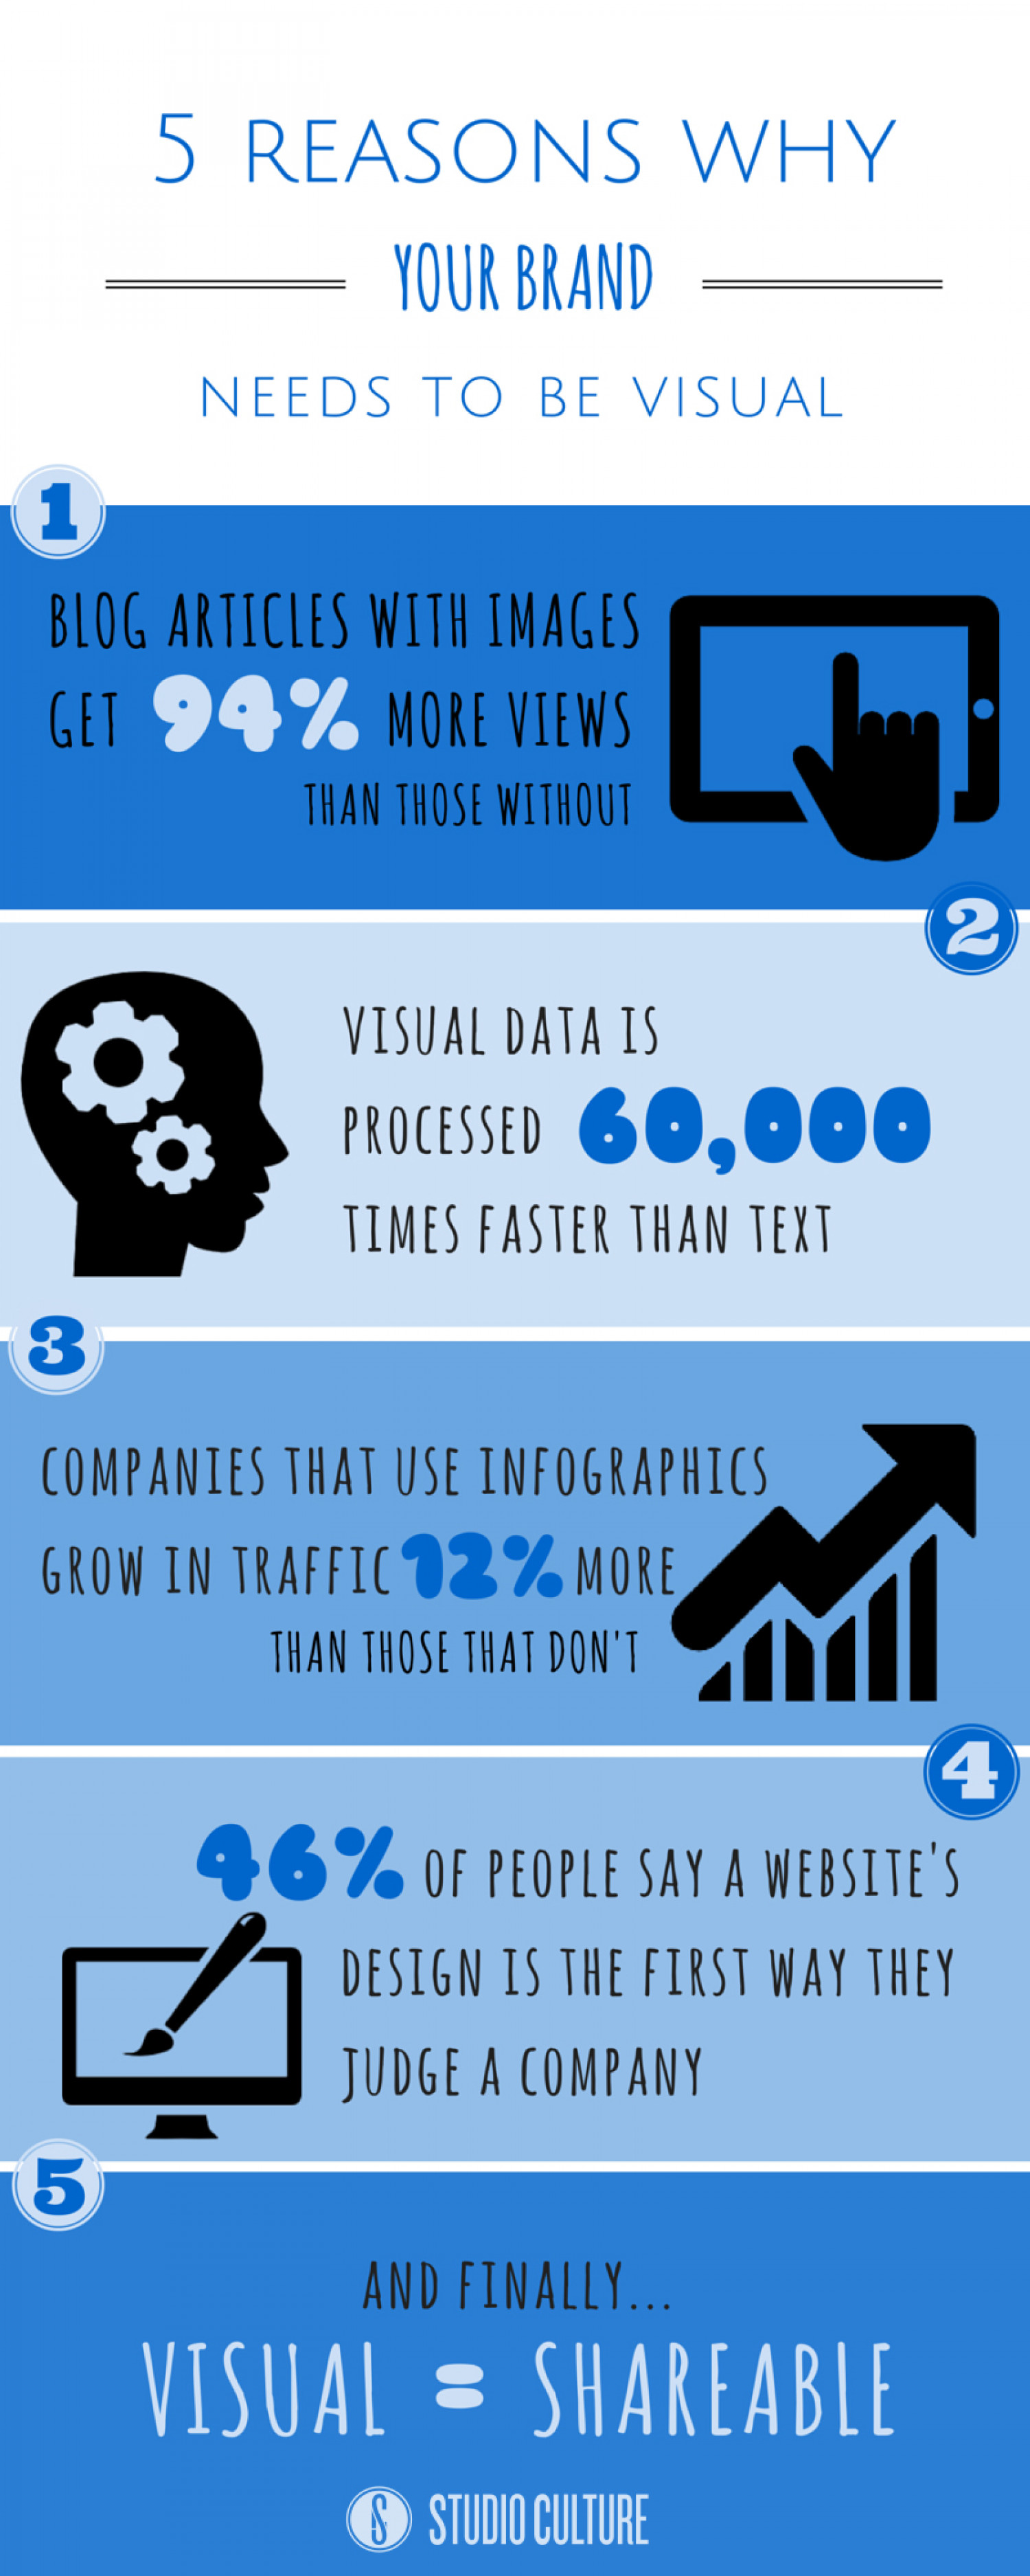 5 Reasons Why Your Brand Needs To Be Visual Infographic